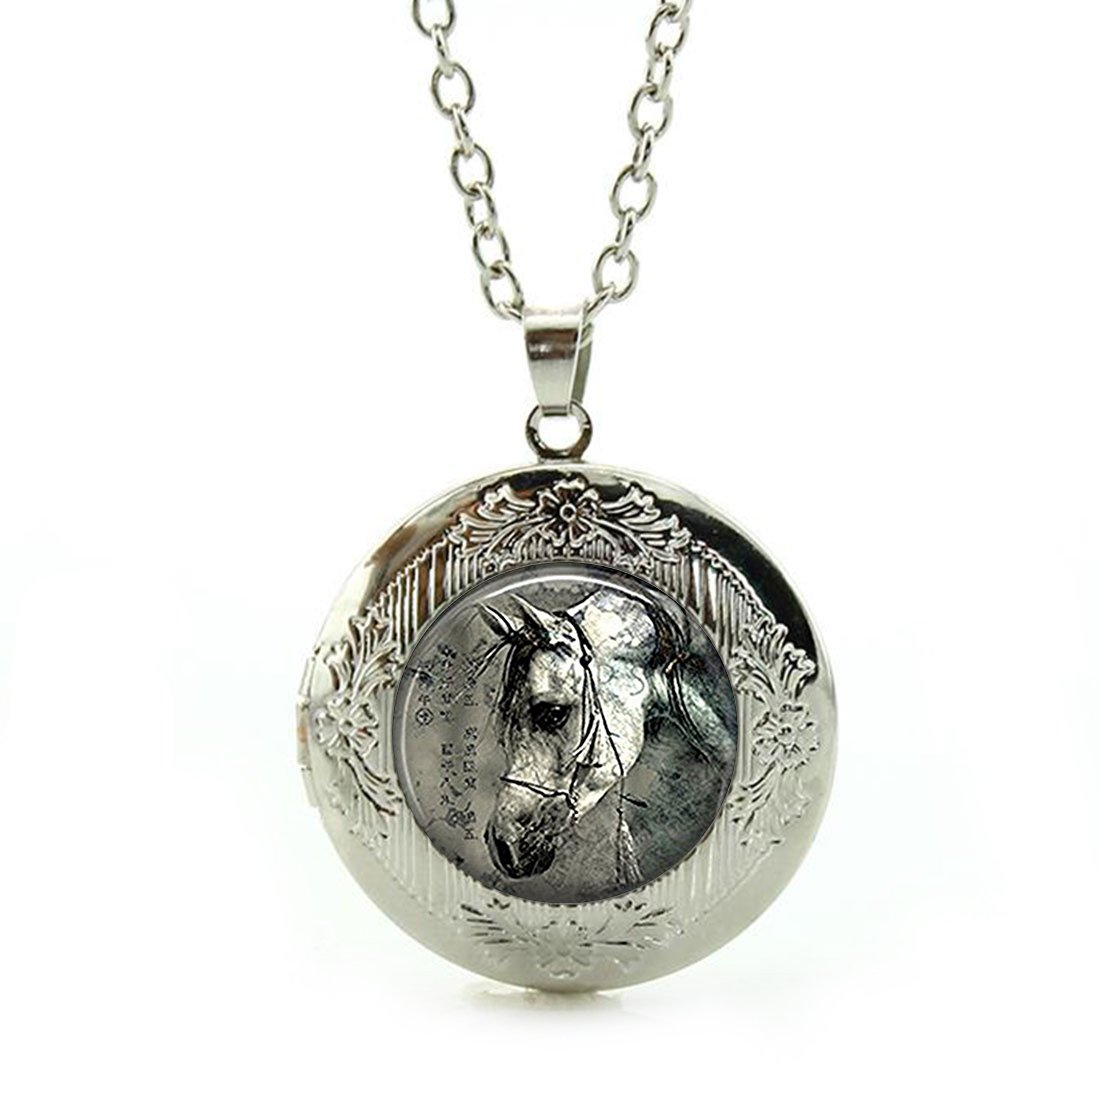 Women's Custom Locket Closure Pendant Necklace Nature Animal Included Free Silver Chain, Best Gift Set LooPoP KF-LSZBS-0343